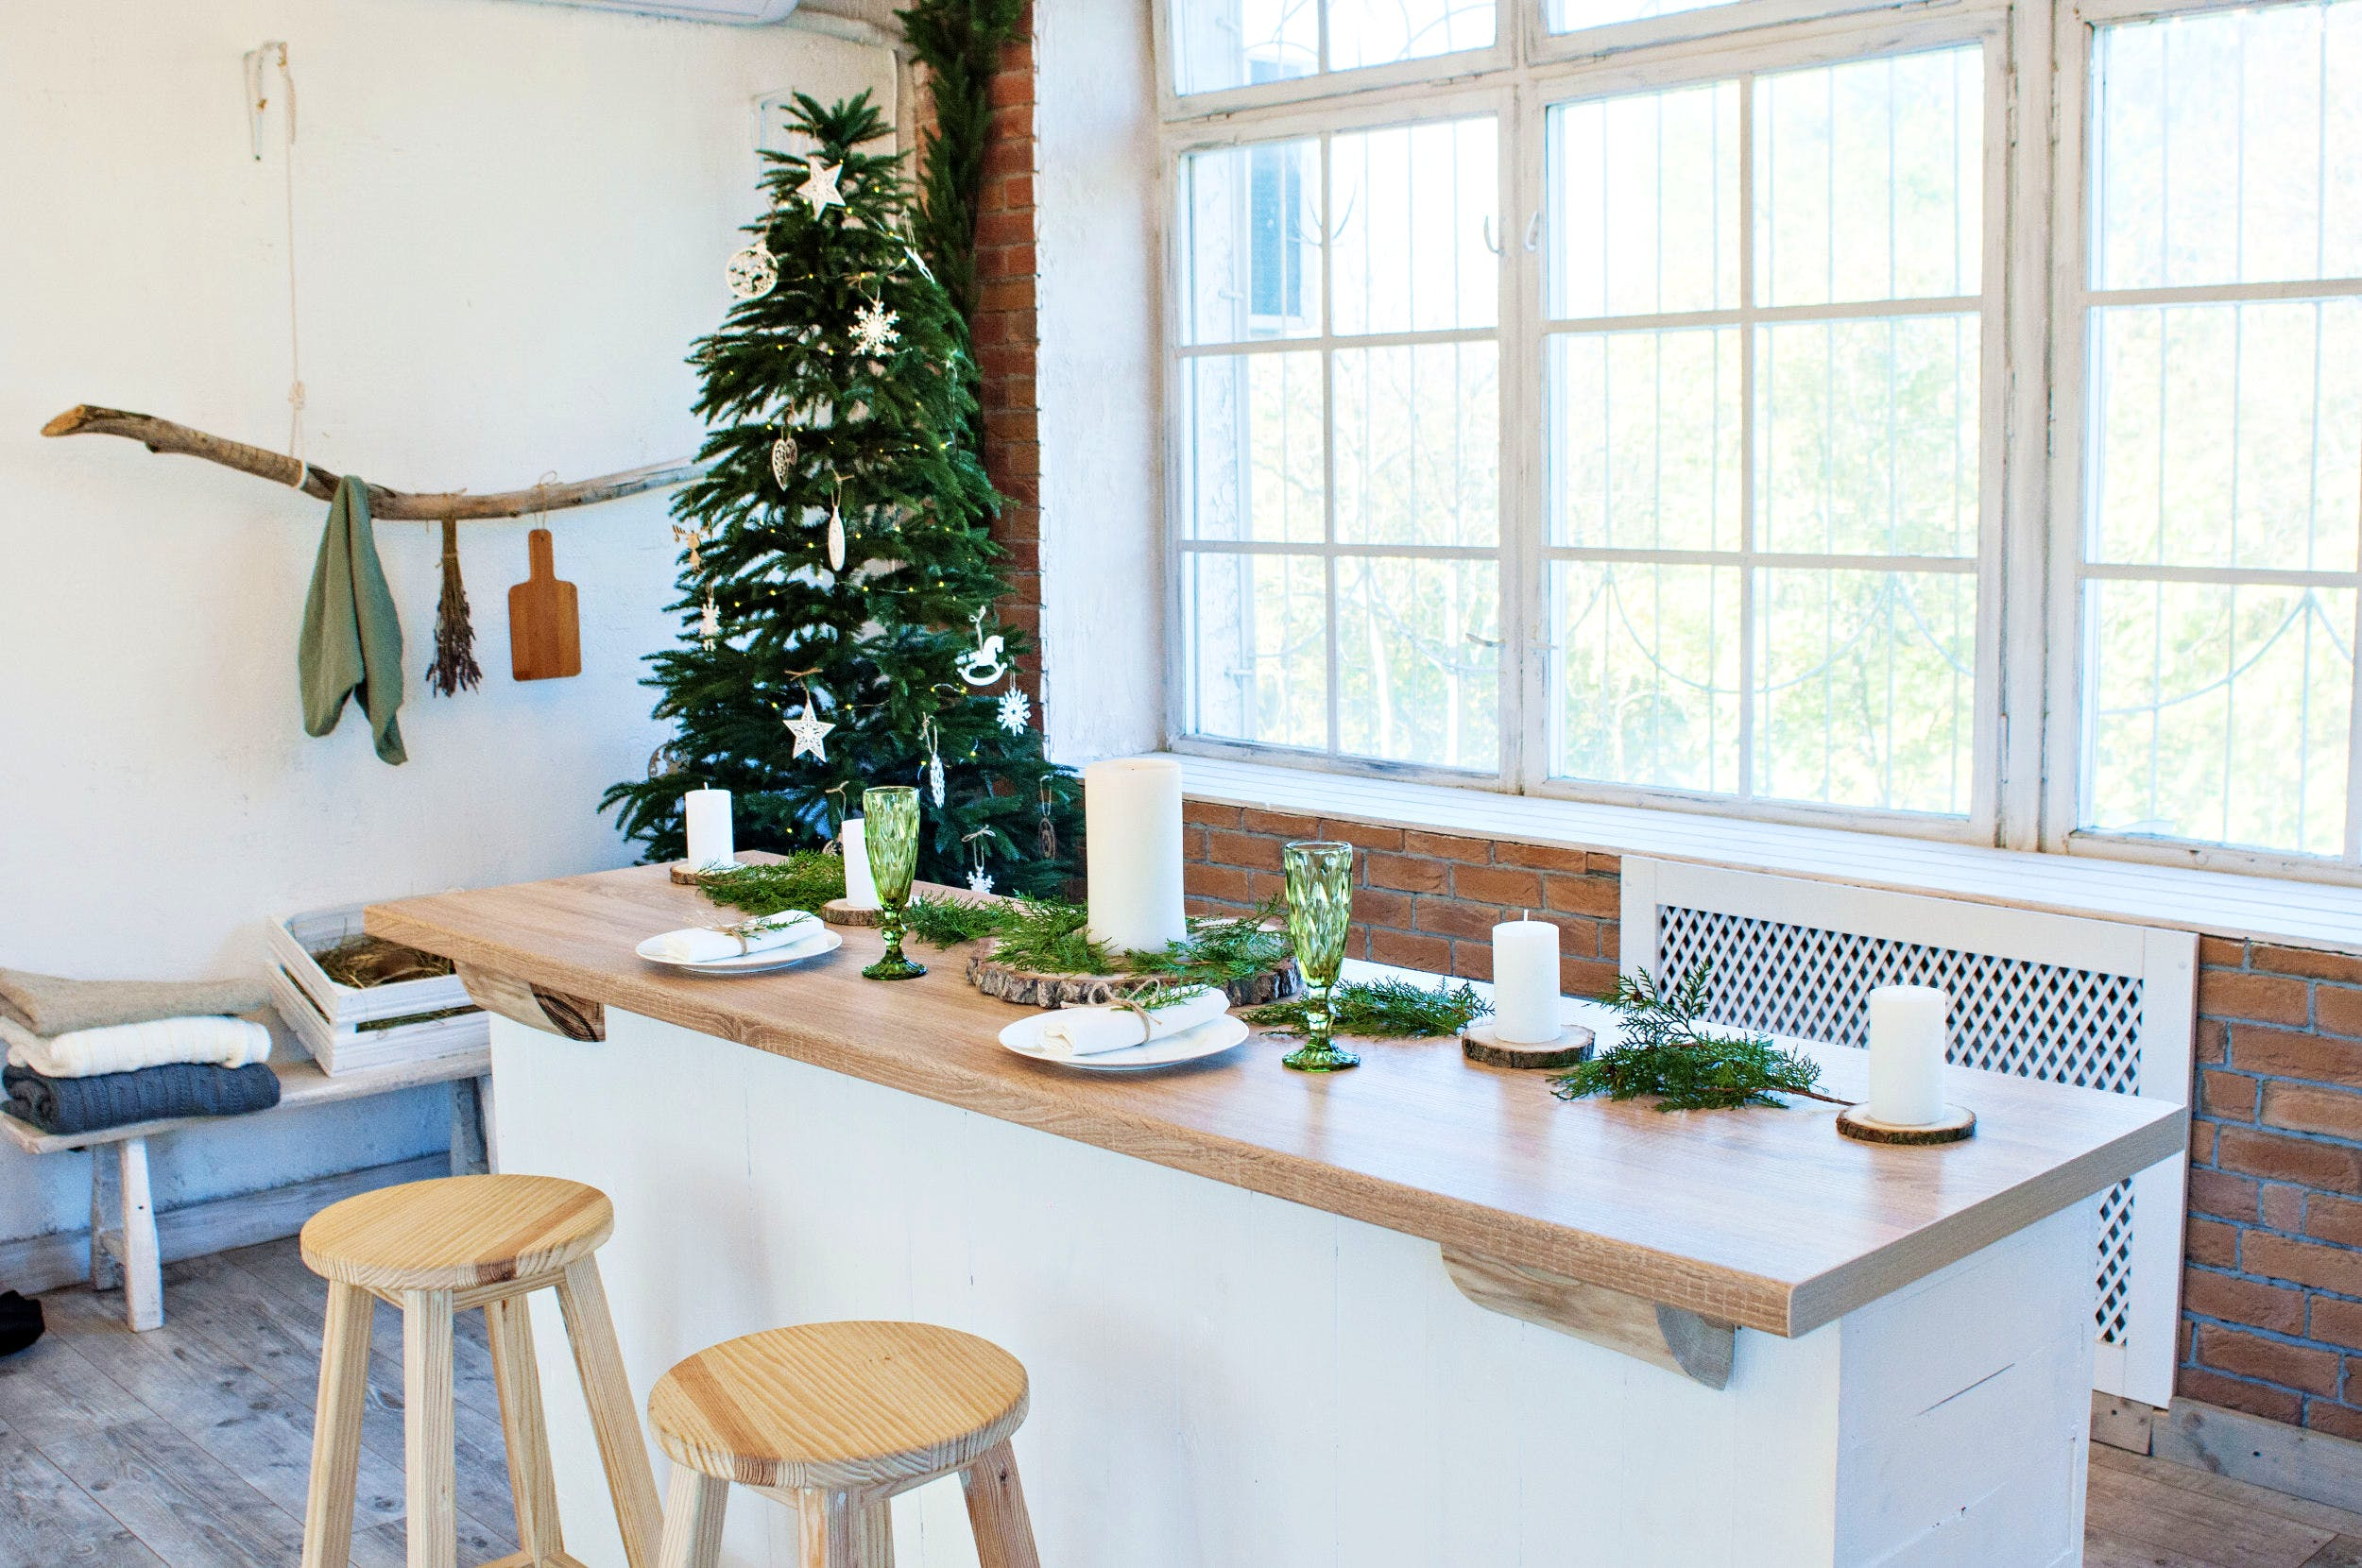 Image of navidad 1 2 in {{The most creative Christmas decoration ideas for your kitchen}} - Cosentino